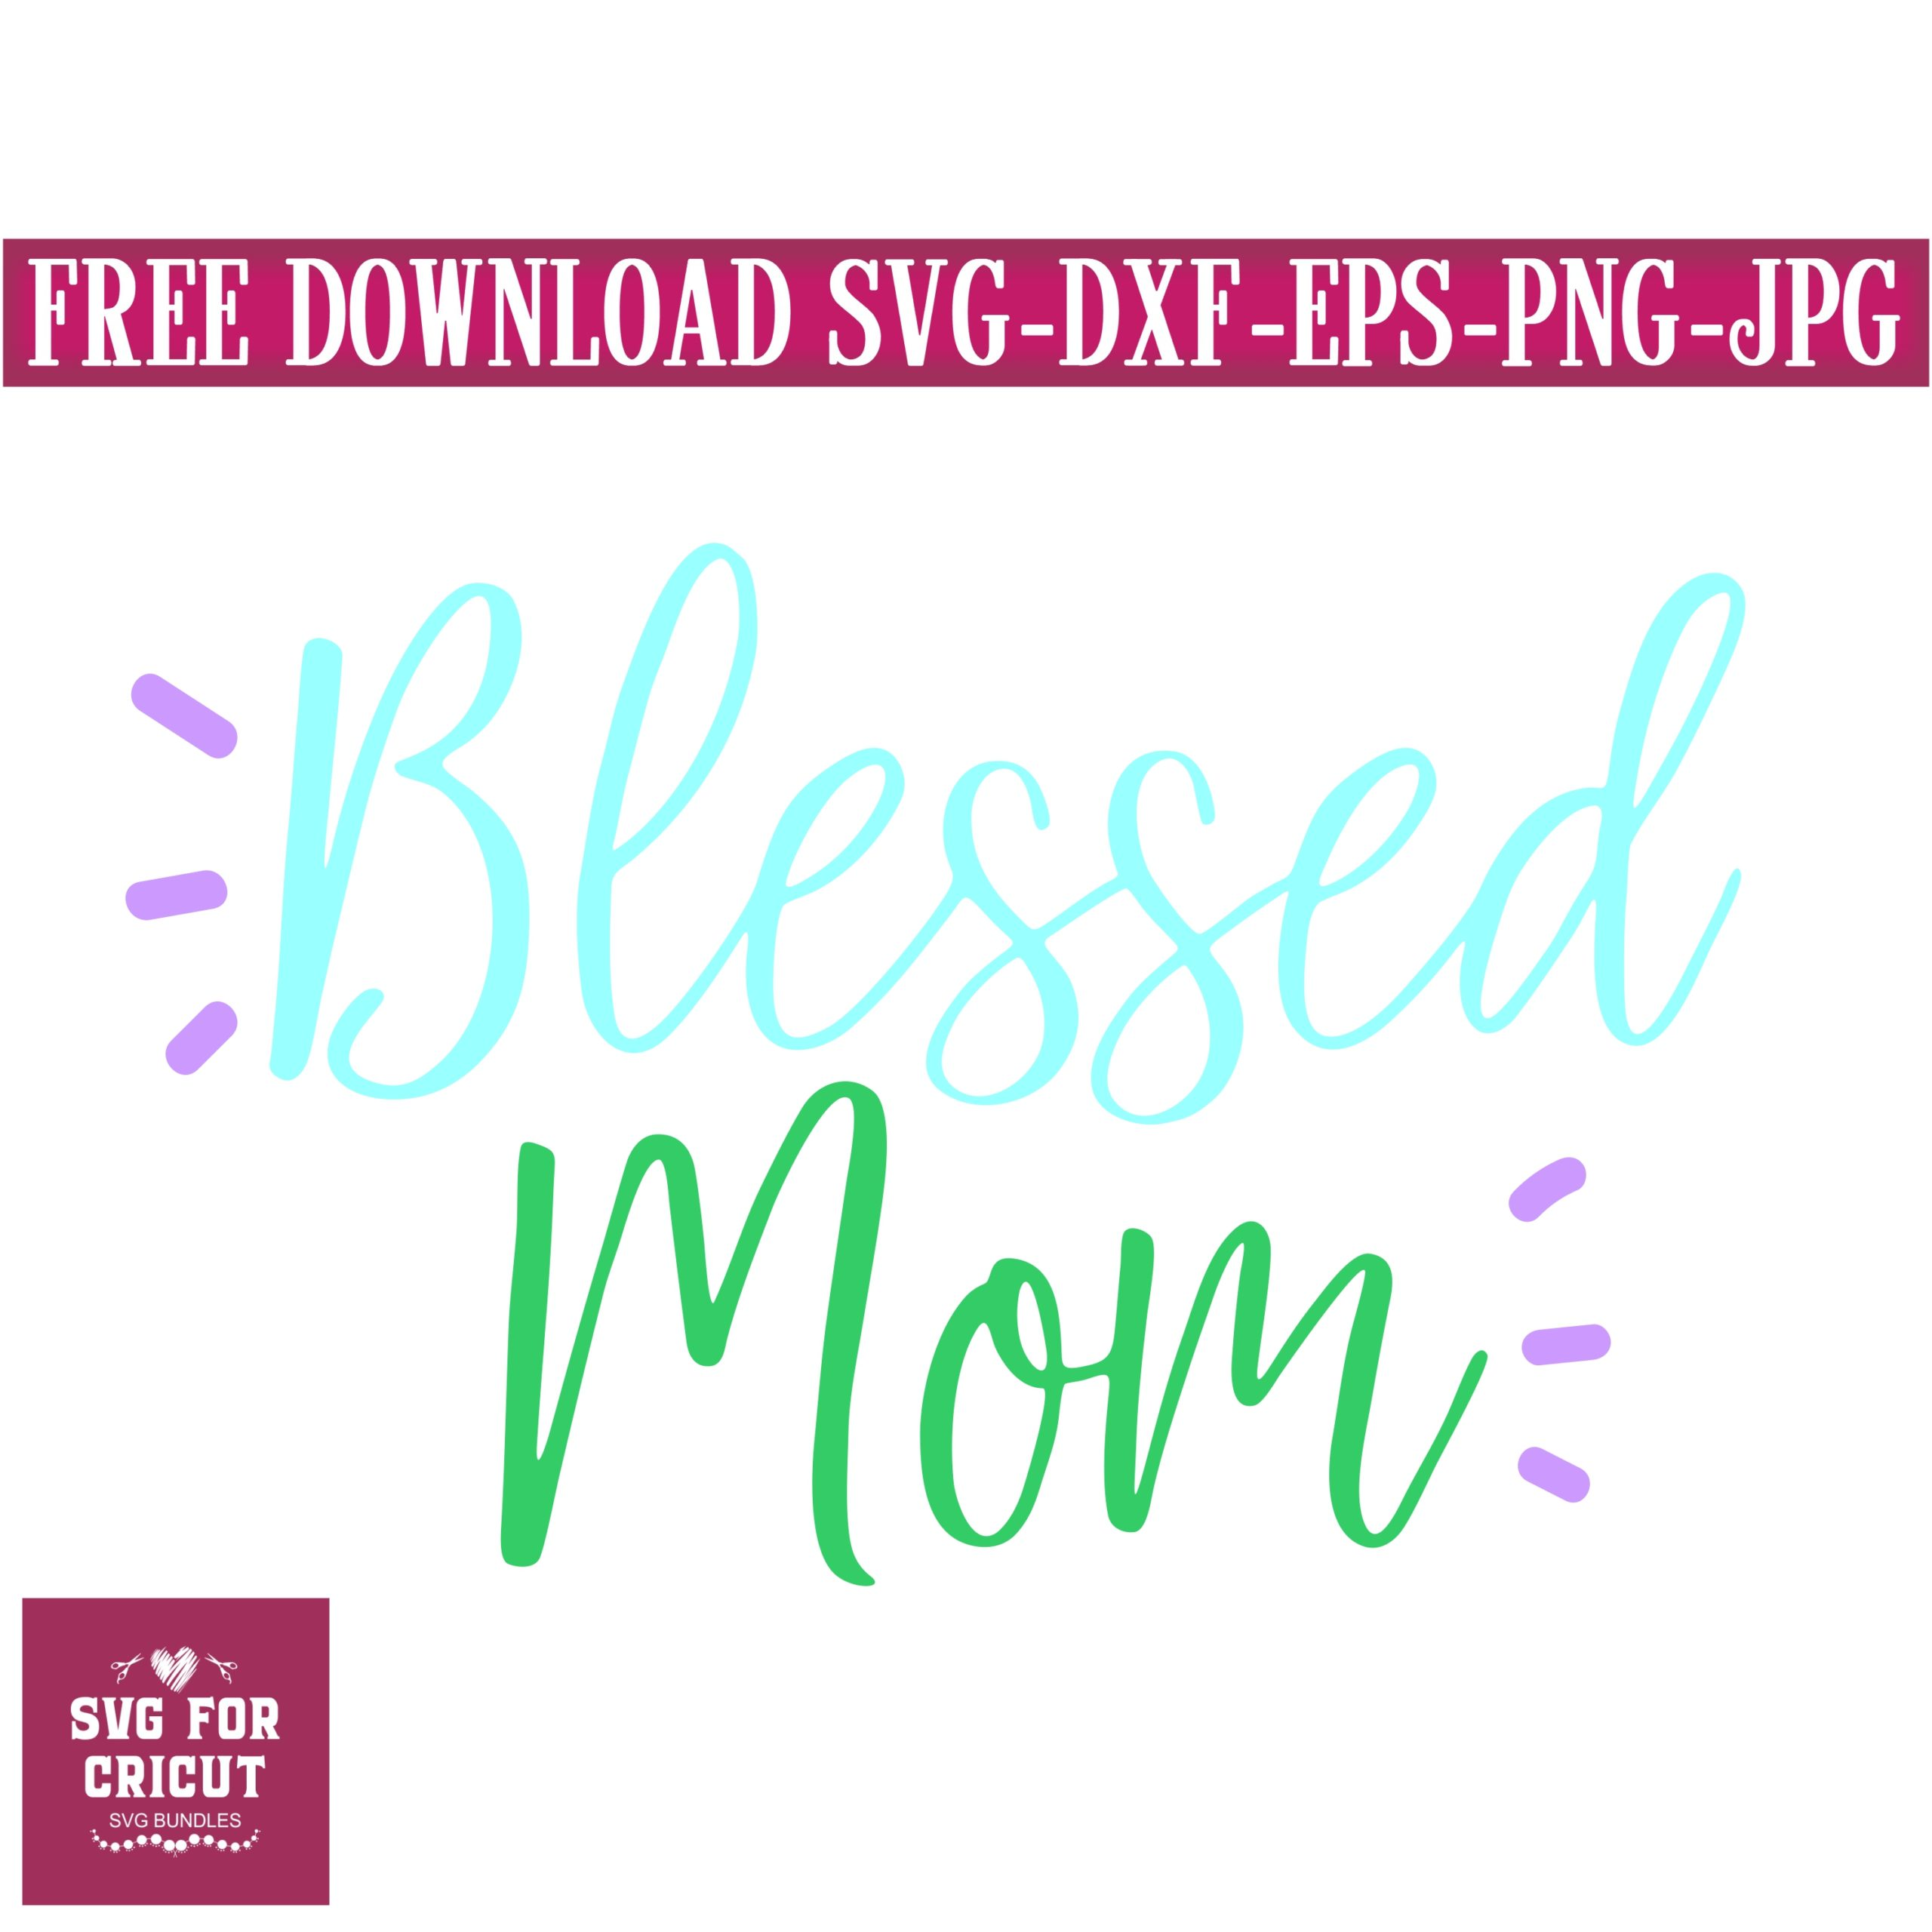 Free Svg Blessed Mom Svg Svg For Cricut Mom Svg Free Cricut Designs Free Cricut Designs Free Silhouette Designs Svg For Cricut